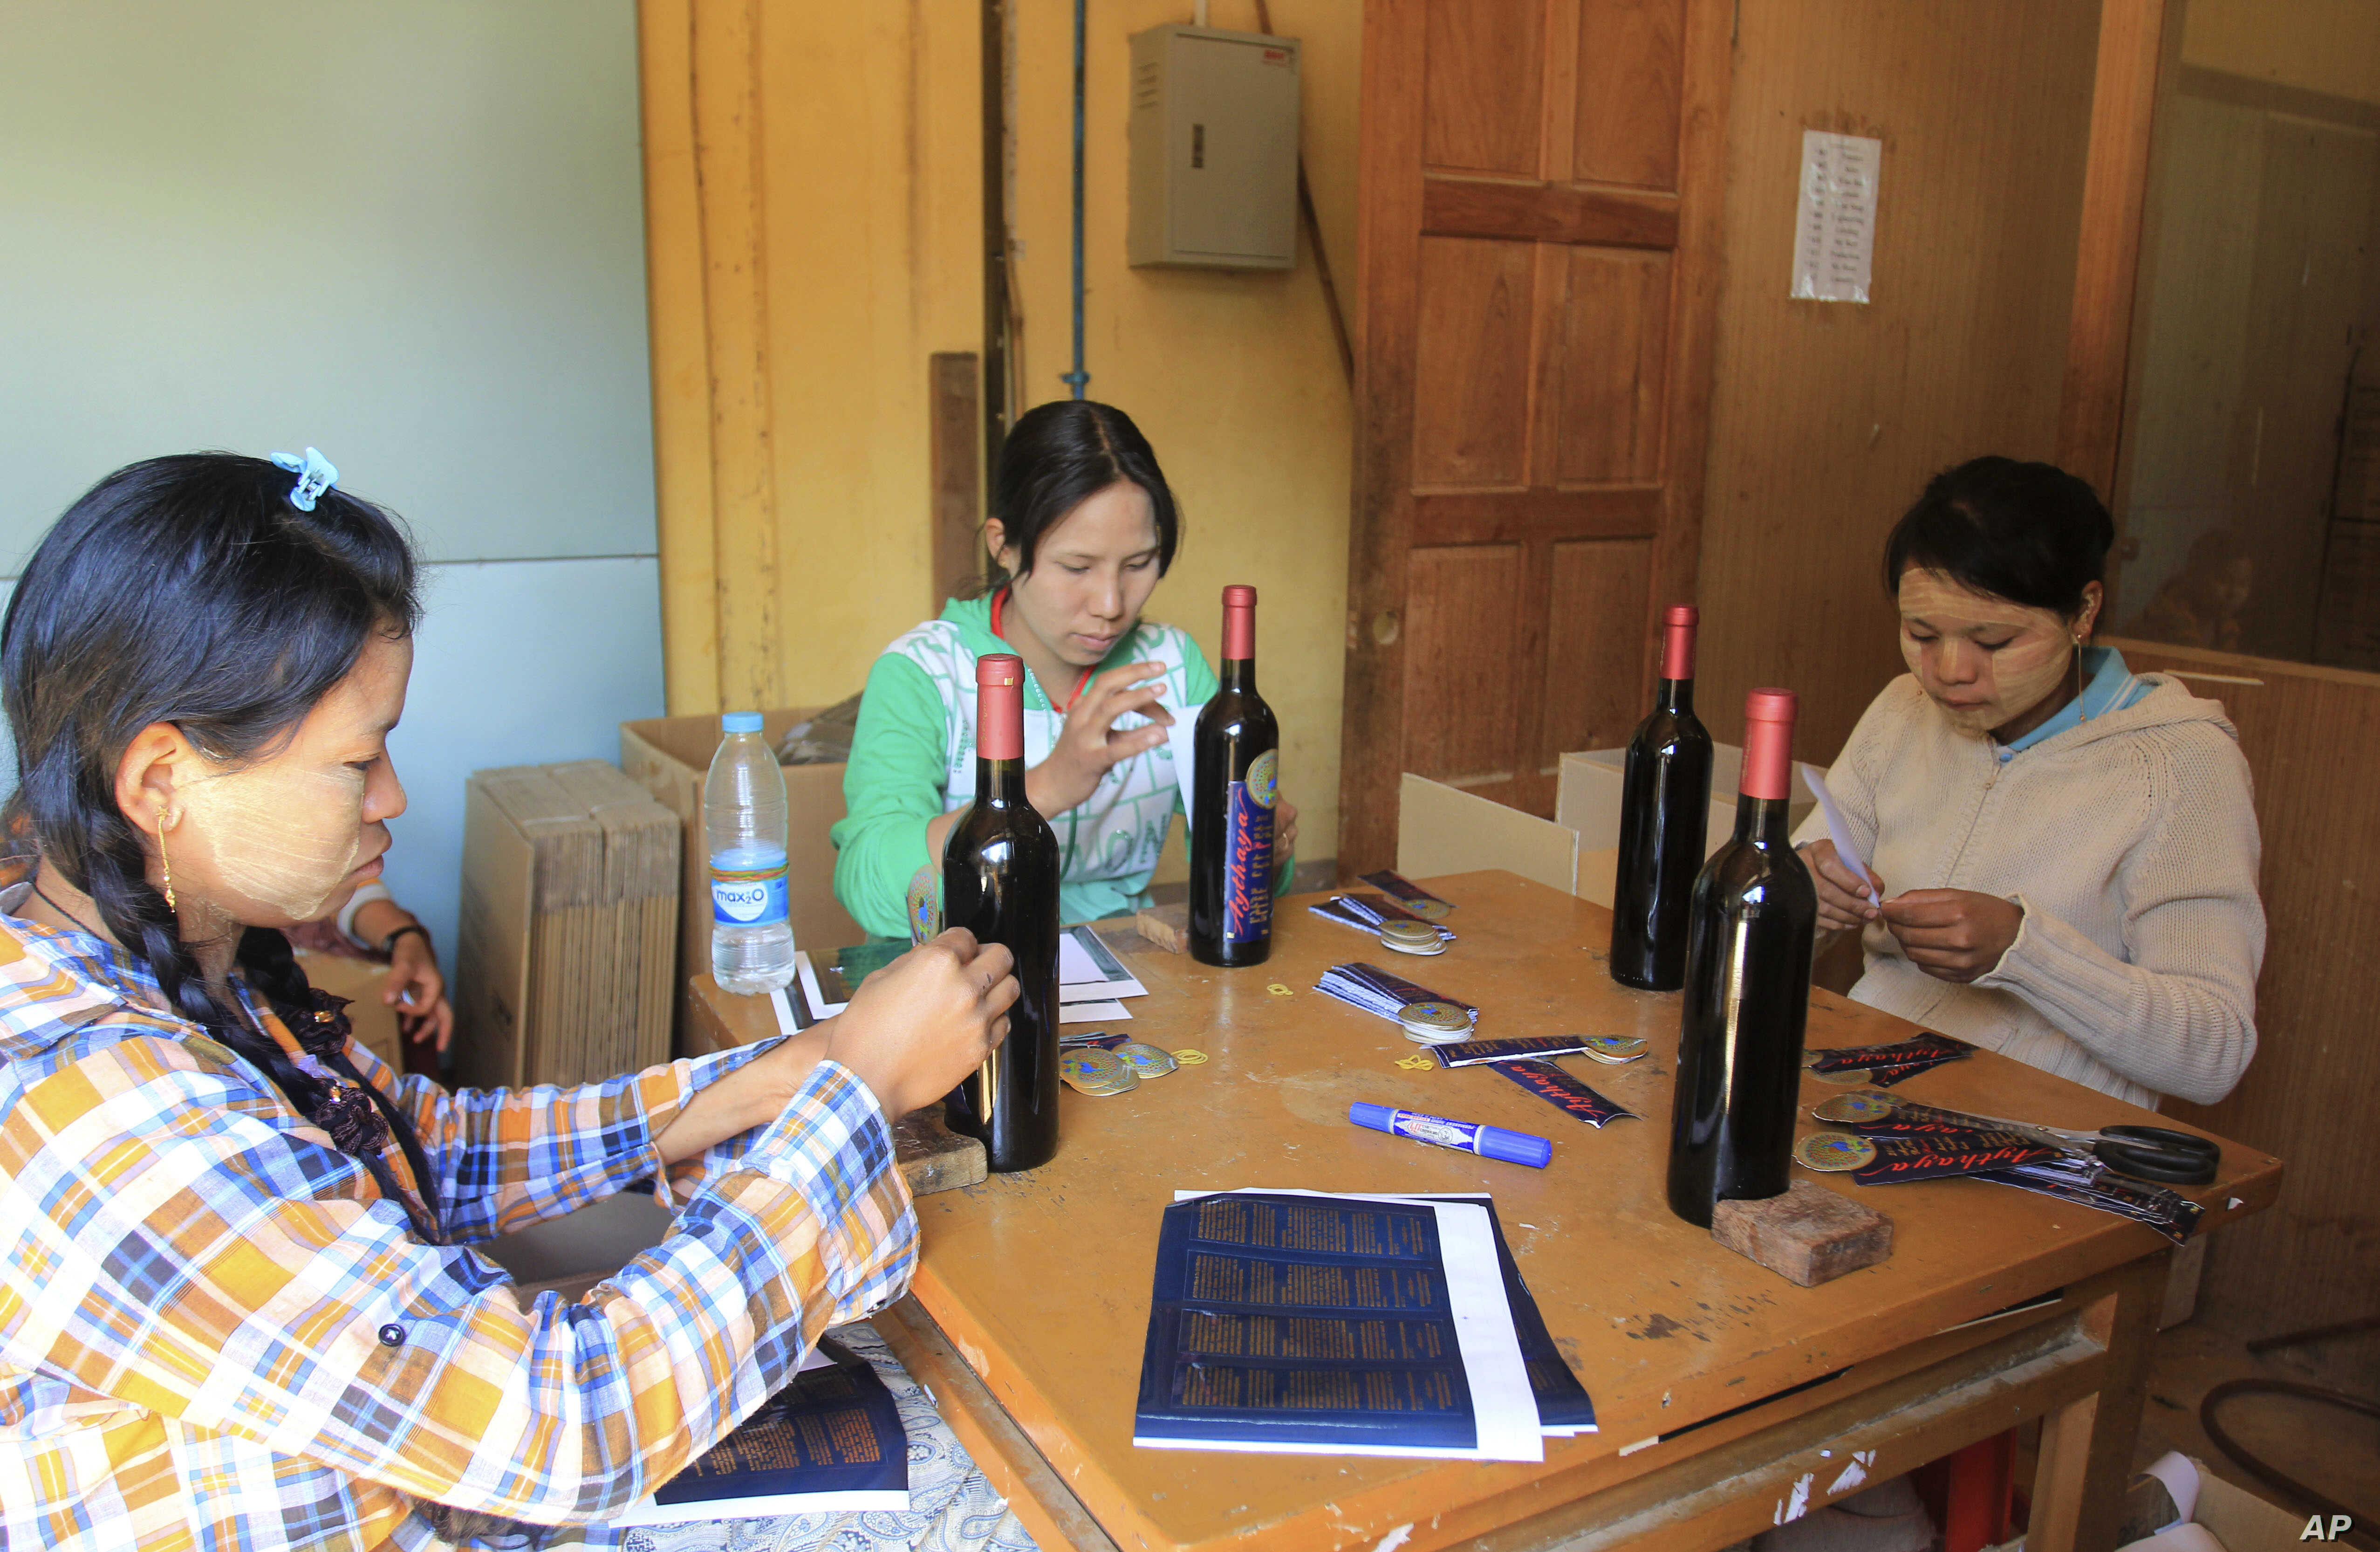 Workers label wine bottles at Aythaya wine estate in Aythaya, near Taunggyi, the capital of northeastern Shan state, Myanmar. Myanmar's first ever winery, a pioneering effort by German entrepreneur, employs about 20-workers daily to maintain the vine